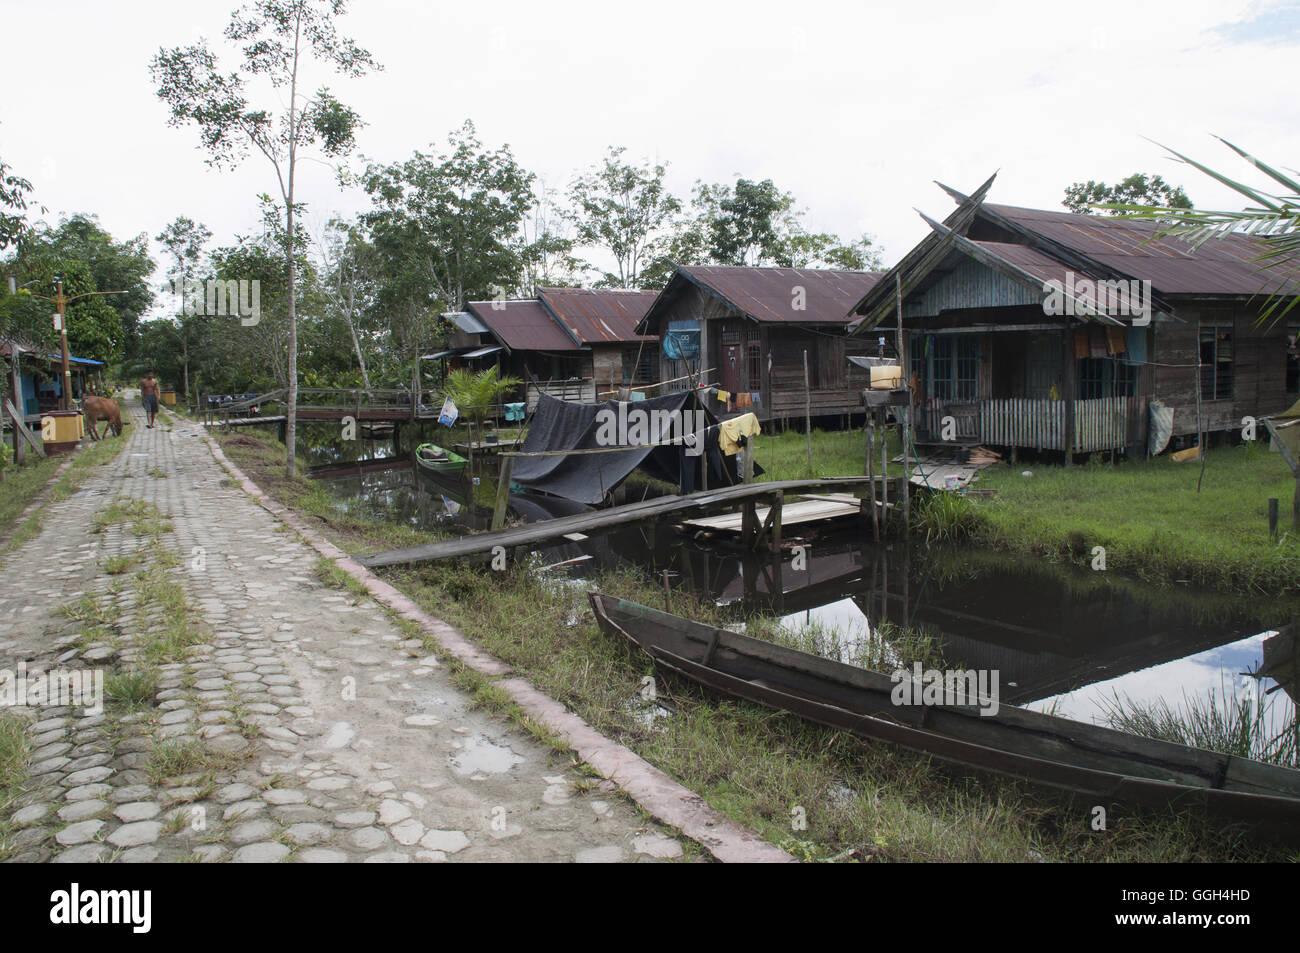 A village in Borneo village, kalimantan, Indonesia. Village located on the banks of sekonyer river in kalimanthan - Stock Image